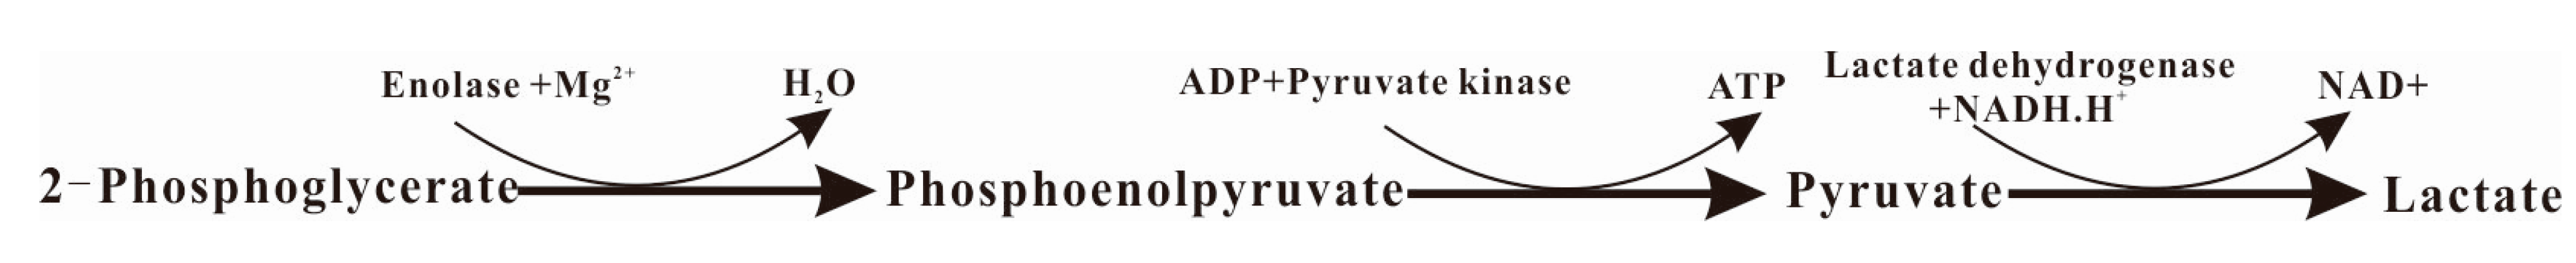 an analysis of the pyruvate kinase by coupling its reaction with lactate dehydrogenase Pyruvate kinase is the enzyme that catalyzes the final step of glycolysis it catalyzes the transfer  the tetrameric form is the pyruvate kinase structure in its r-state  there are two steps in the pyruvate kinase reaction in glycolysis first, pep  in glycolysis, the rate-affecting steps are coupled with the hydrolysis of atp or the.